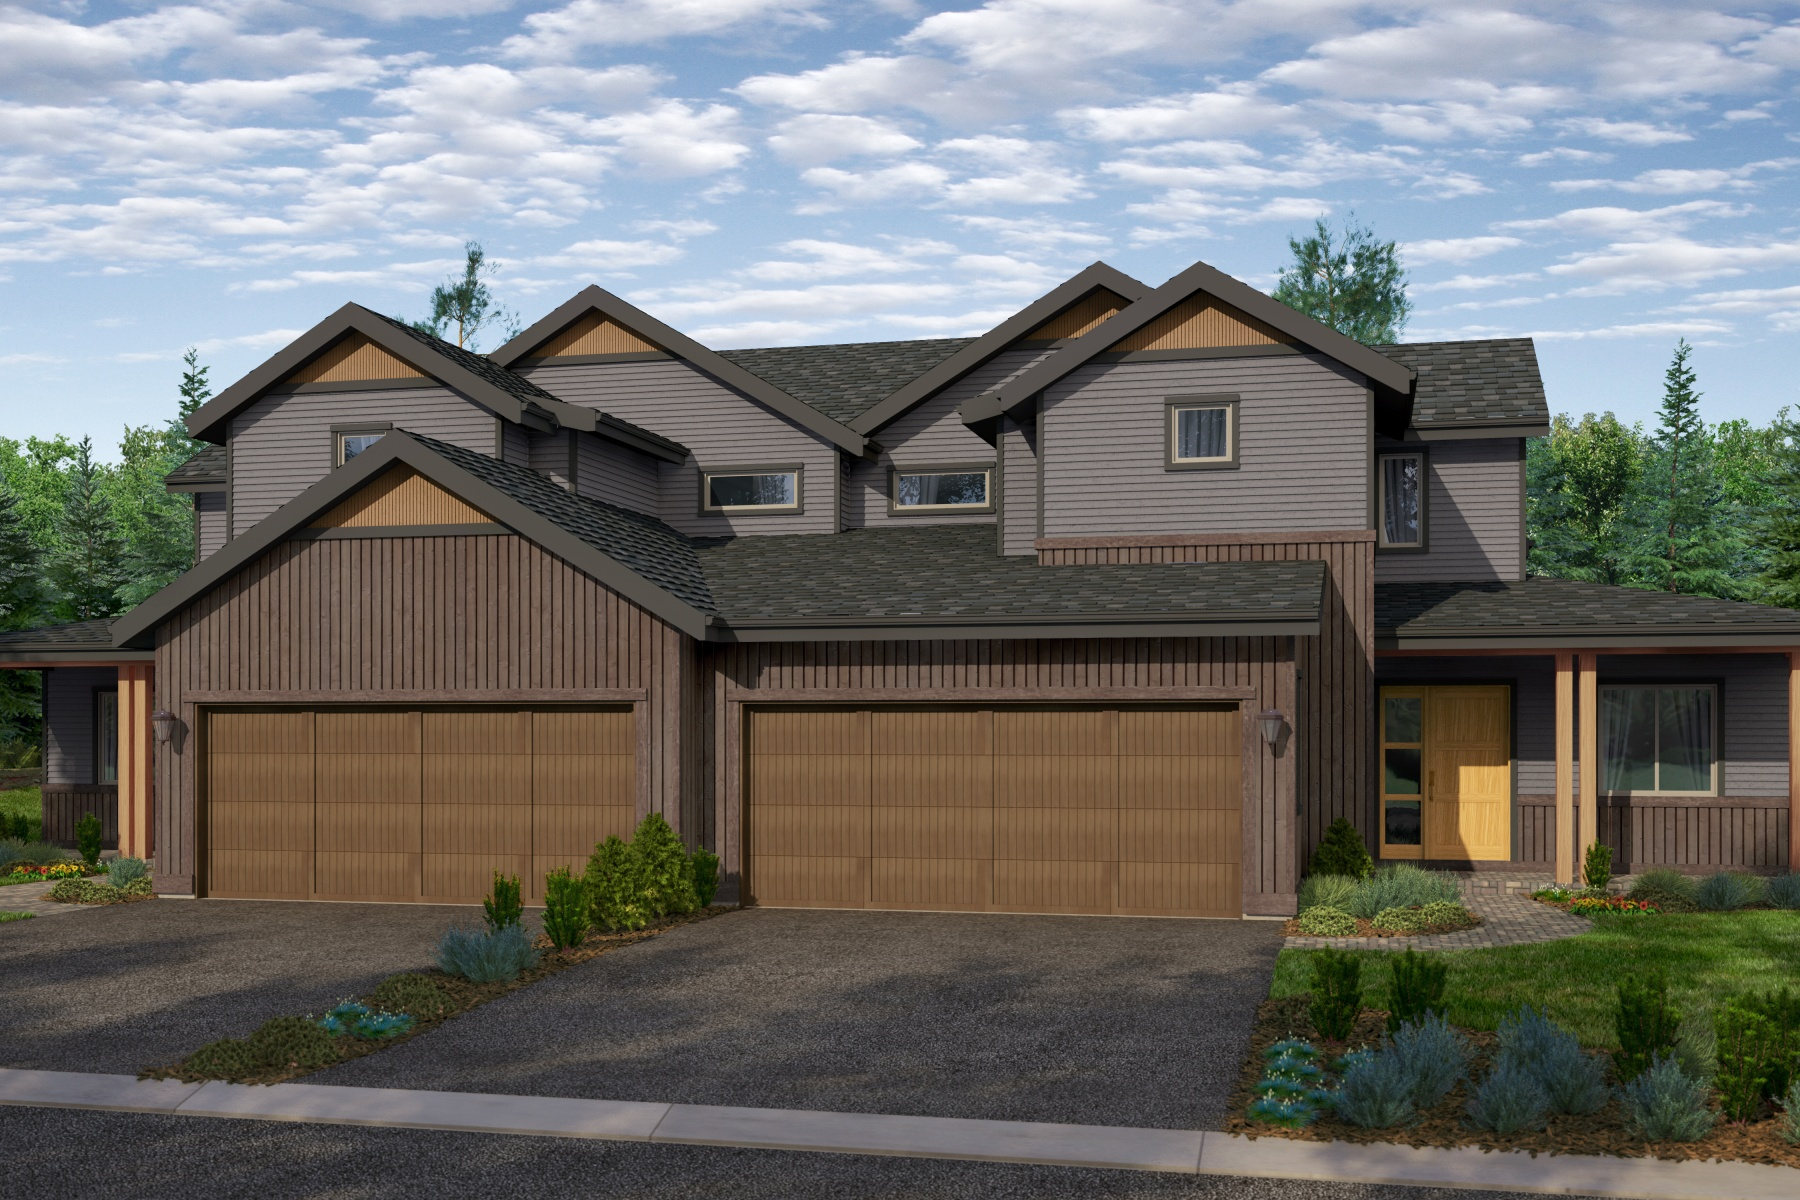 Townhouse for Sale at 60400-Lot 17 Kangaroo Loop Bend, Oregon, 97702 United States